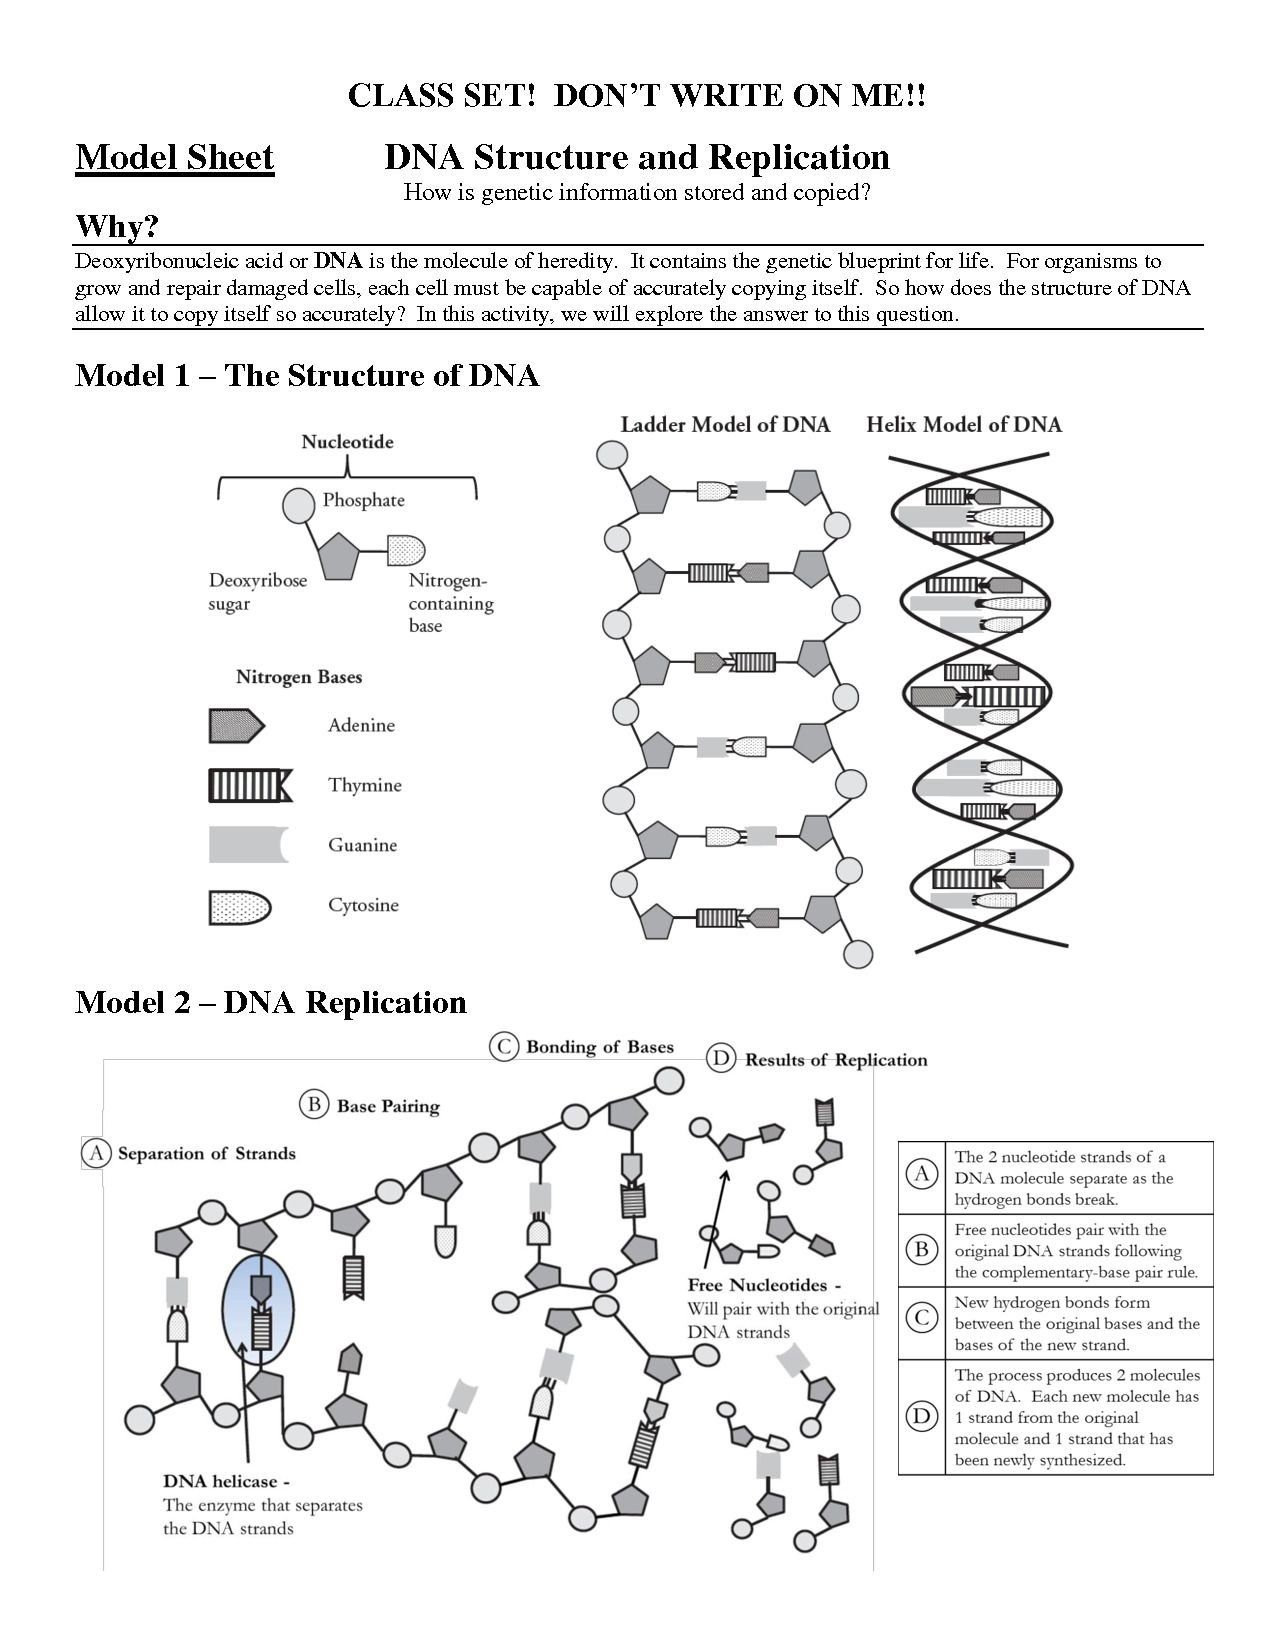 Cell Cycle And Dna Replication Practice Worksheet Key  Briefencounters Intended For Cell Cycle And Dna Replication Practice Worksheet Key